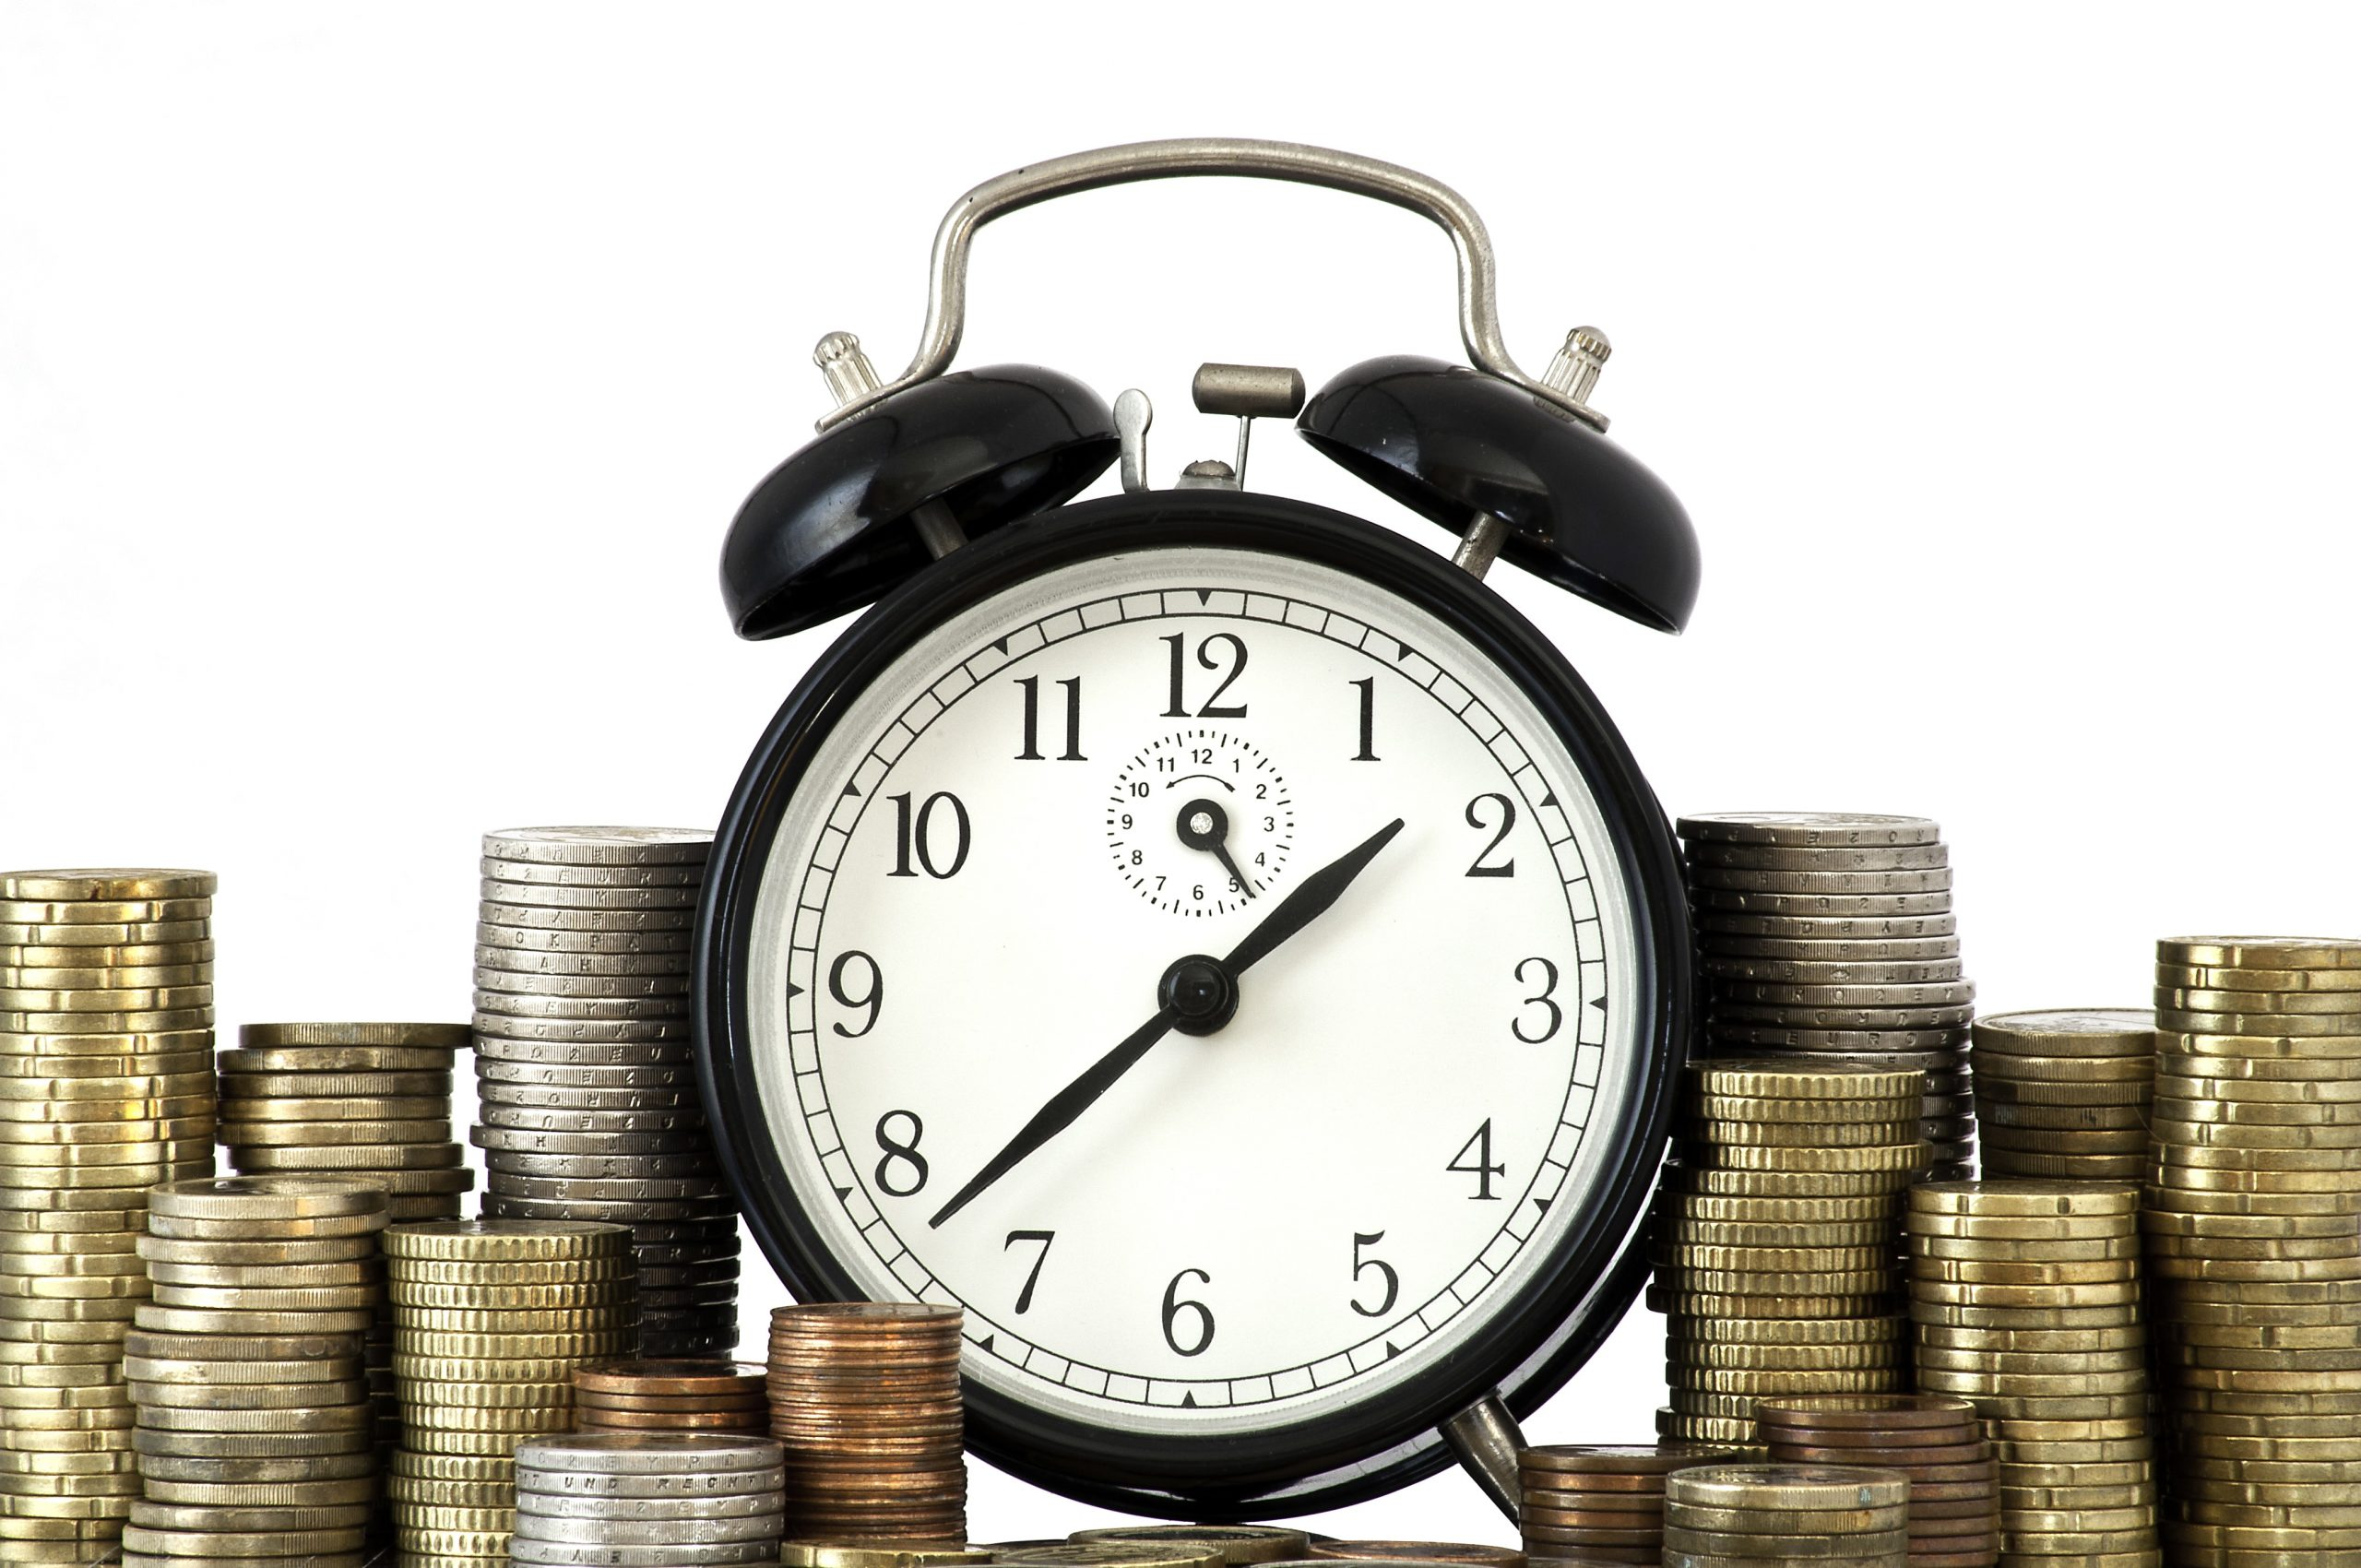 clock surrounded by money